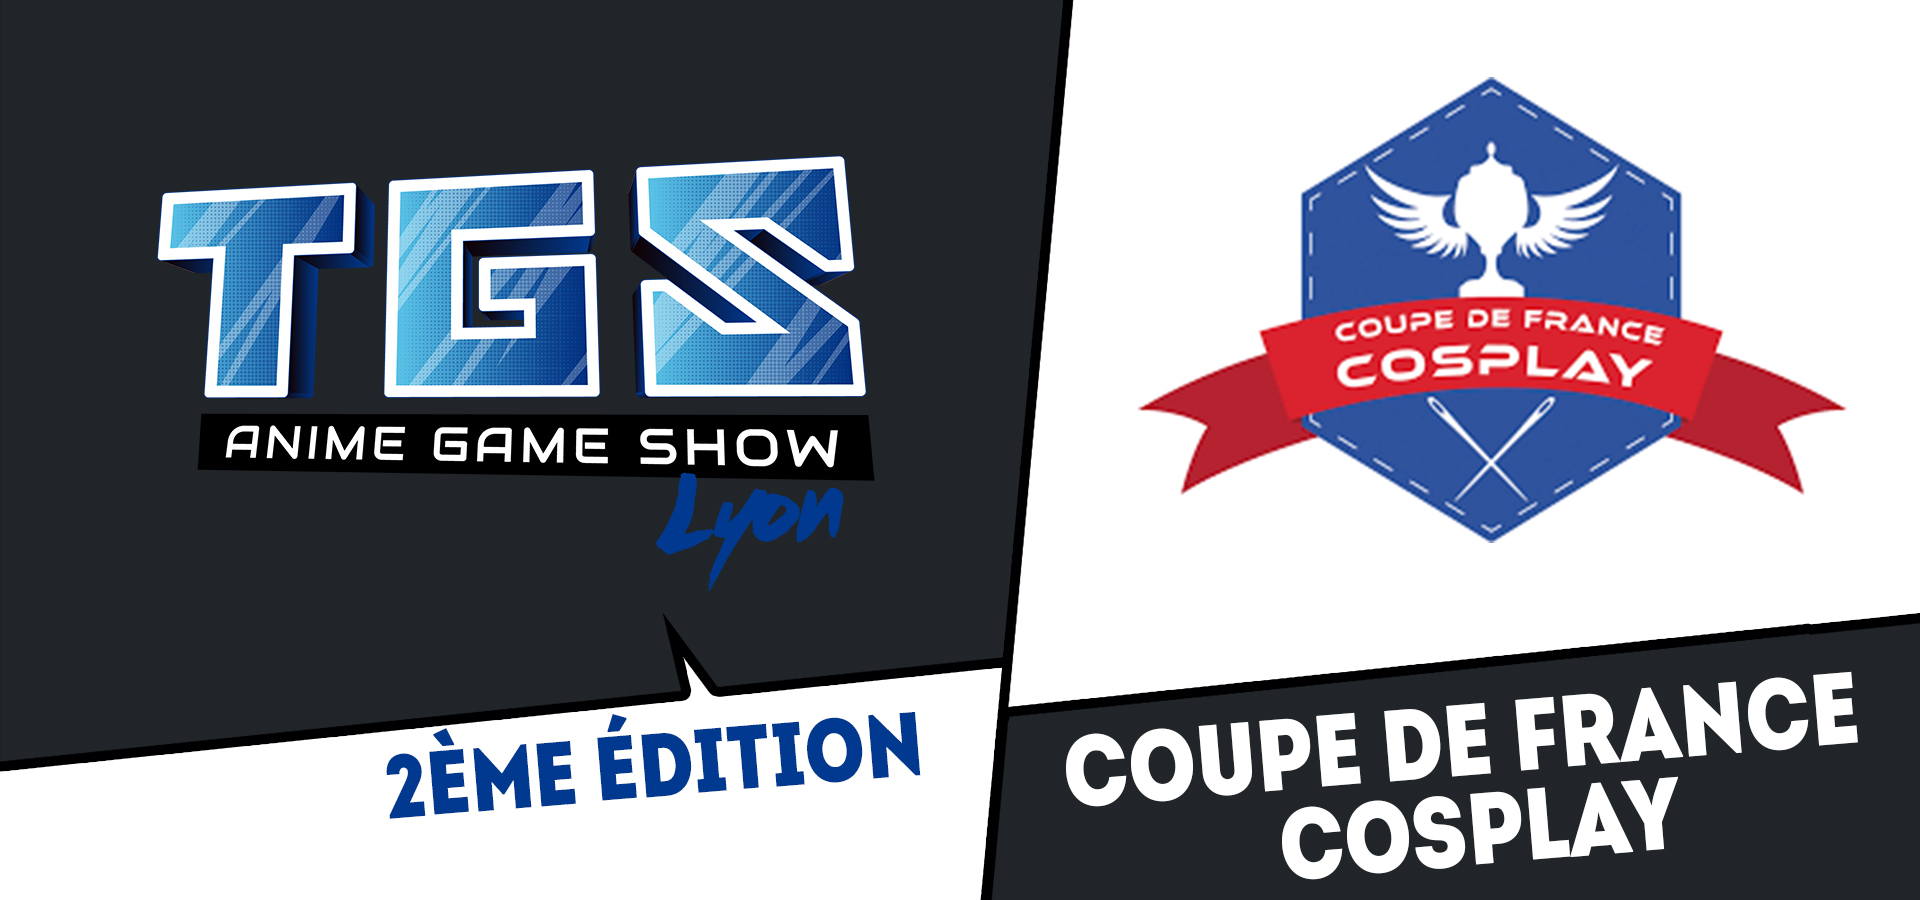 https://tgs-lyongameshow.fr/Concours cosplay